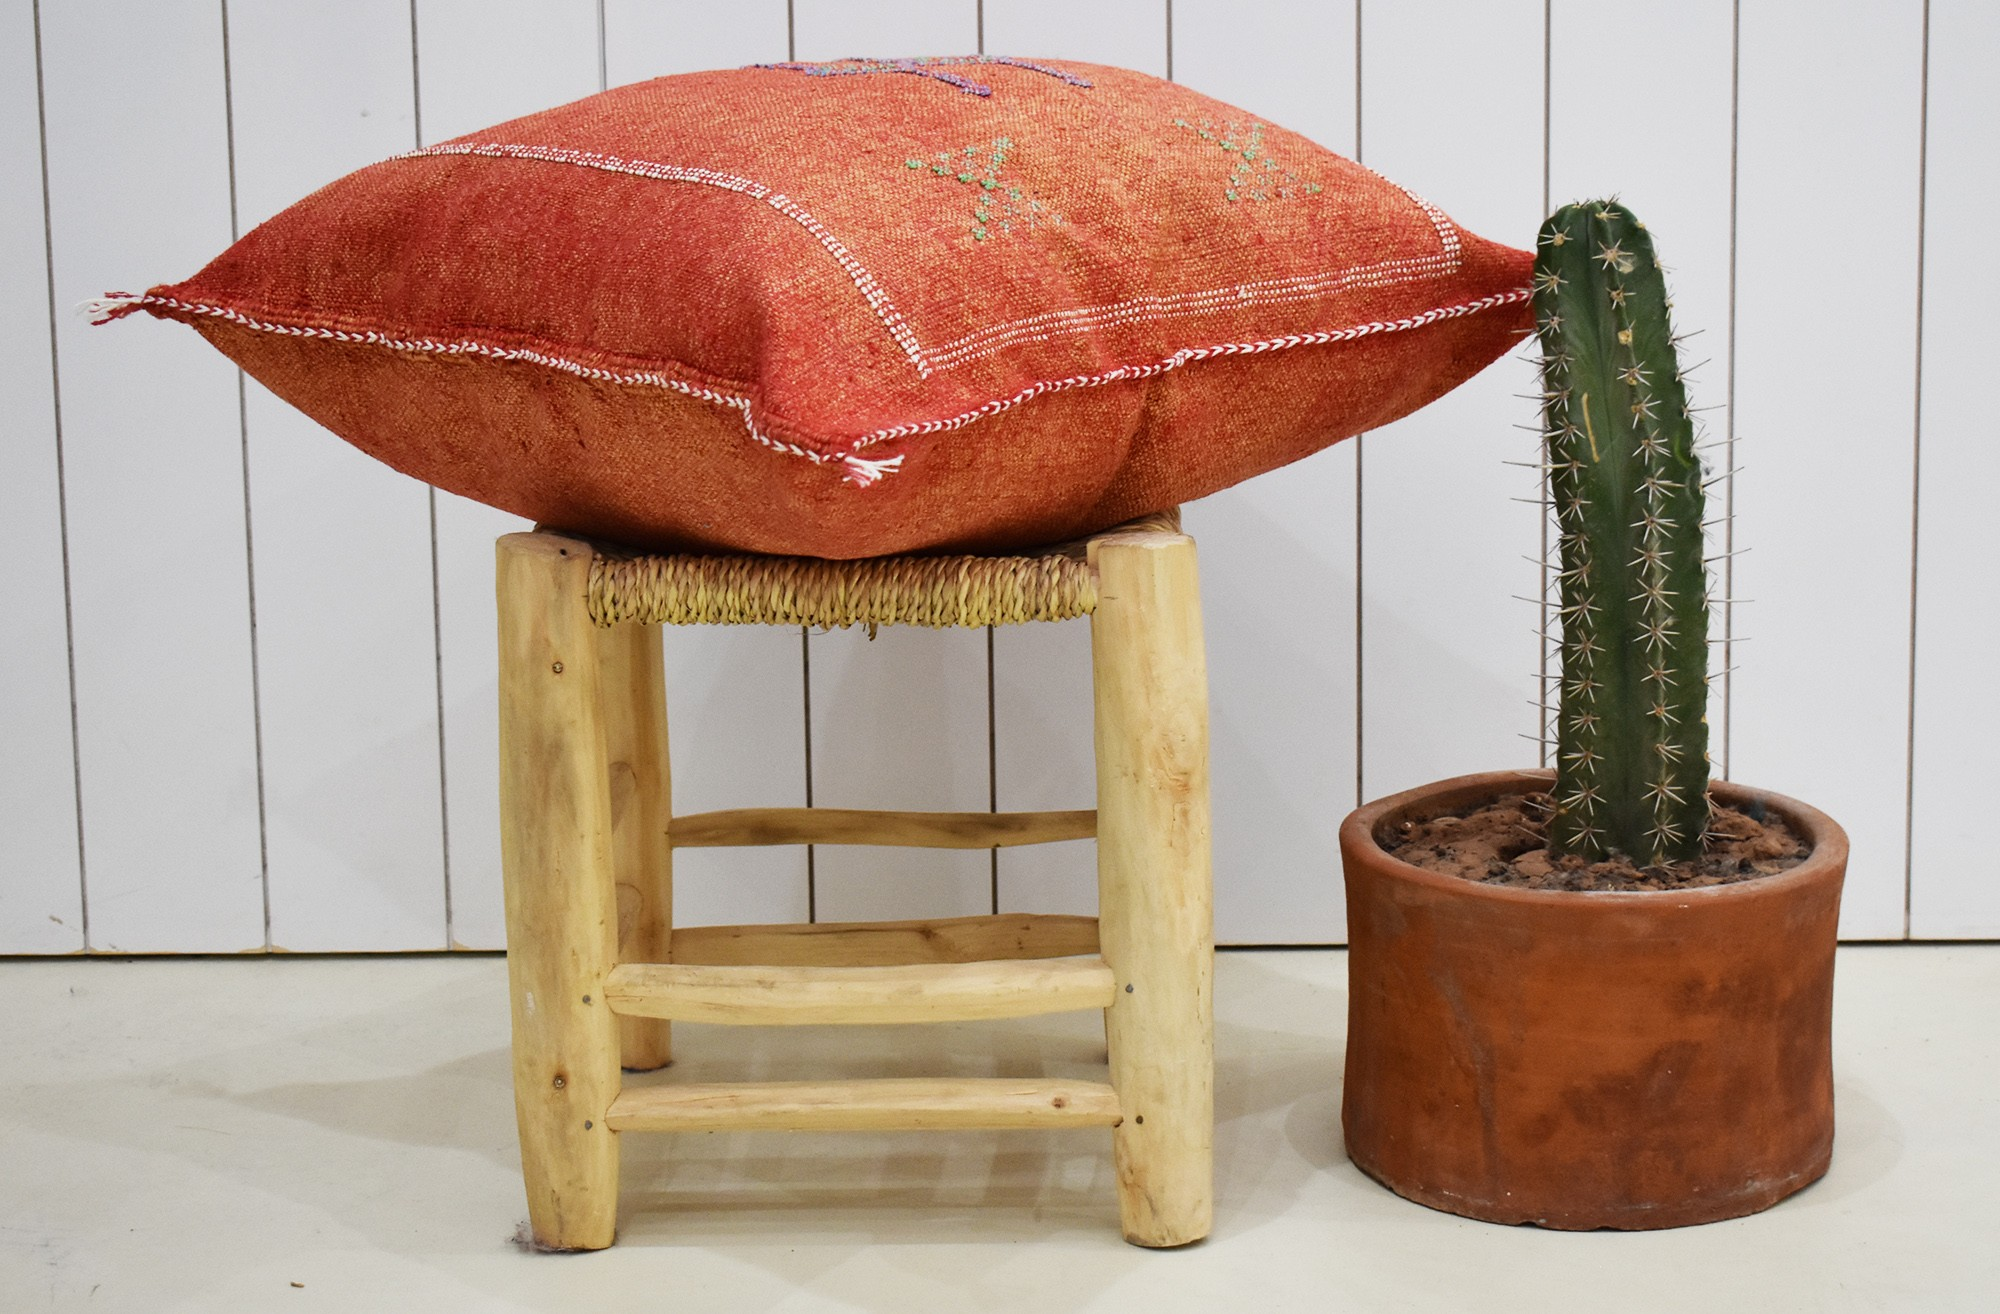 Red Berber cushion cover with orange tones